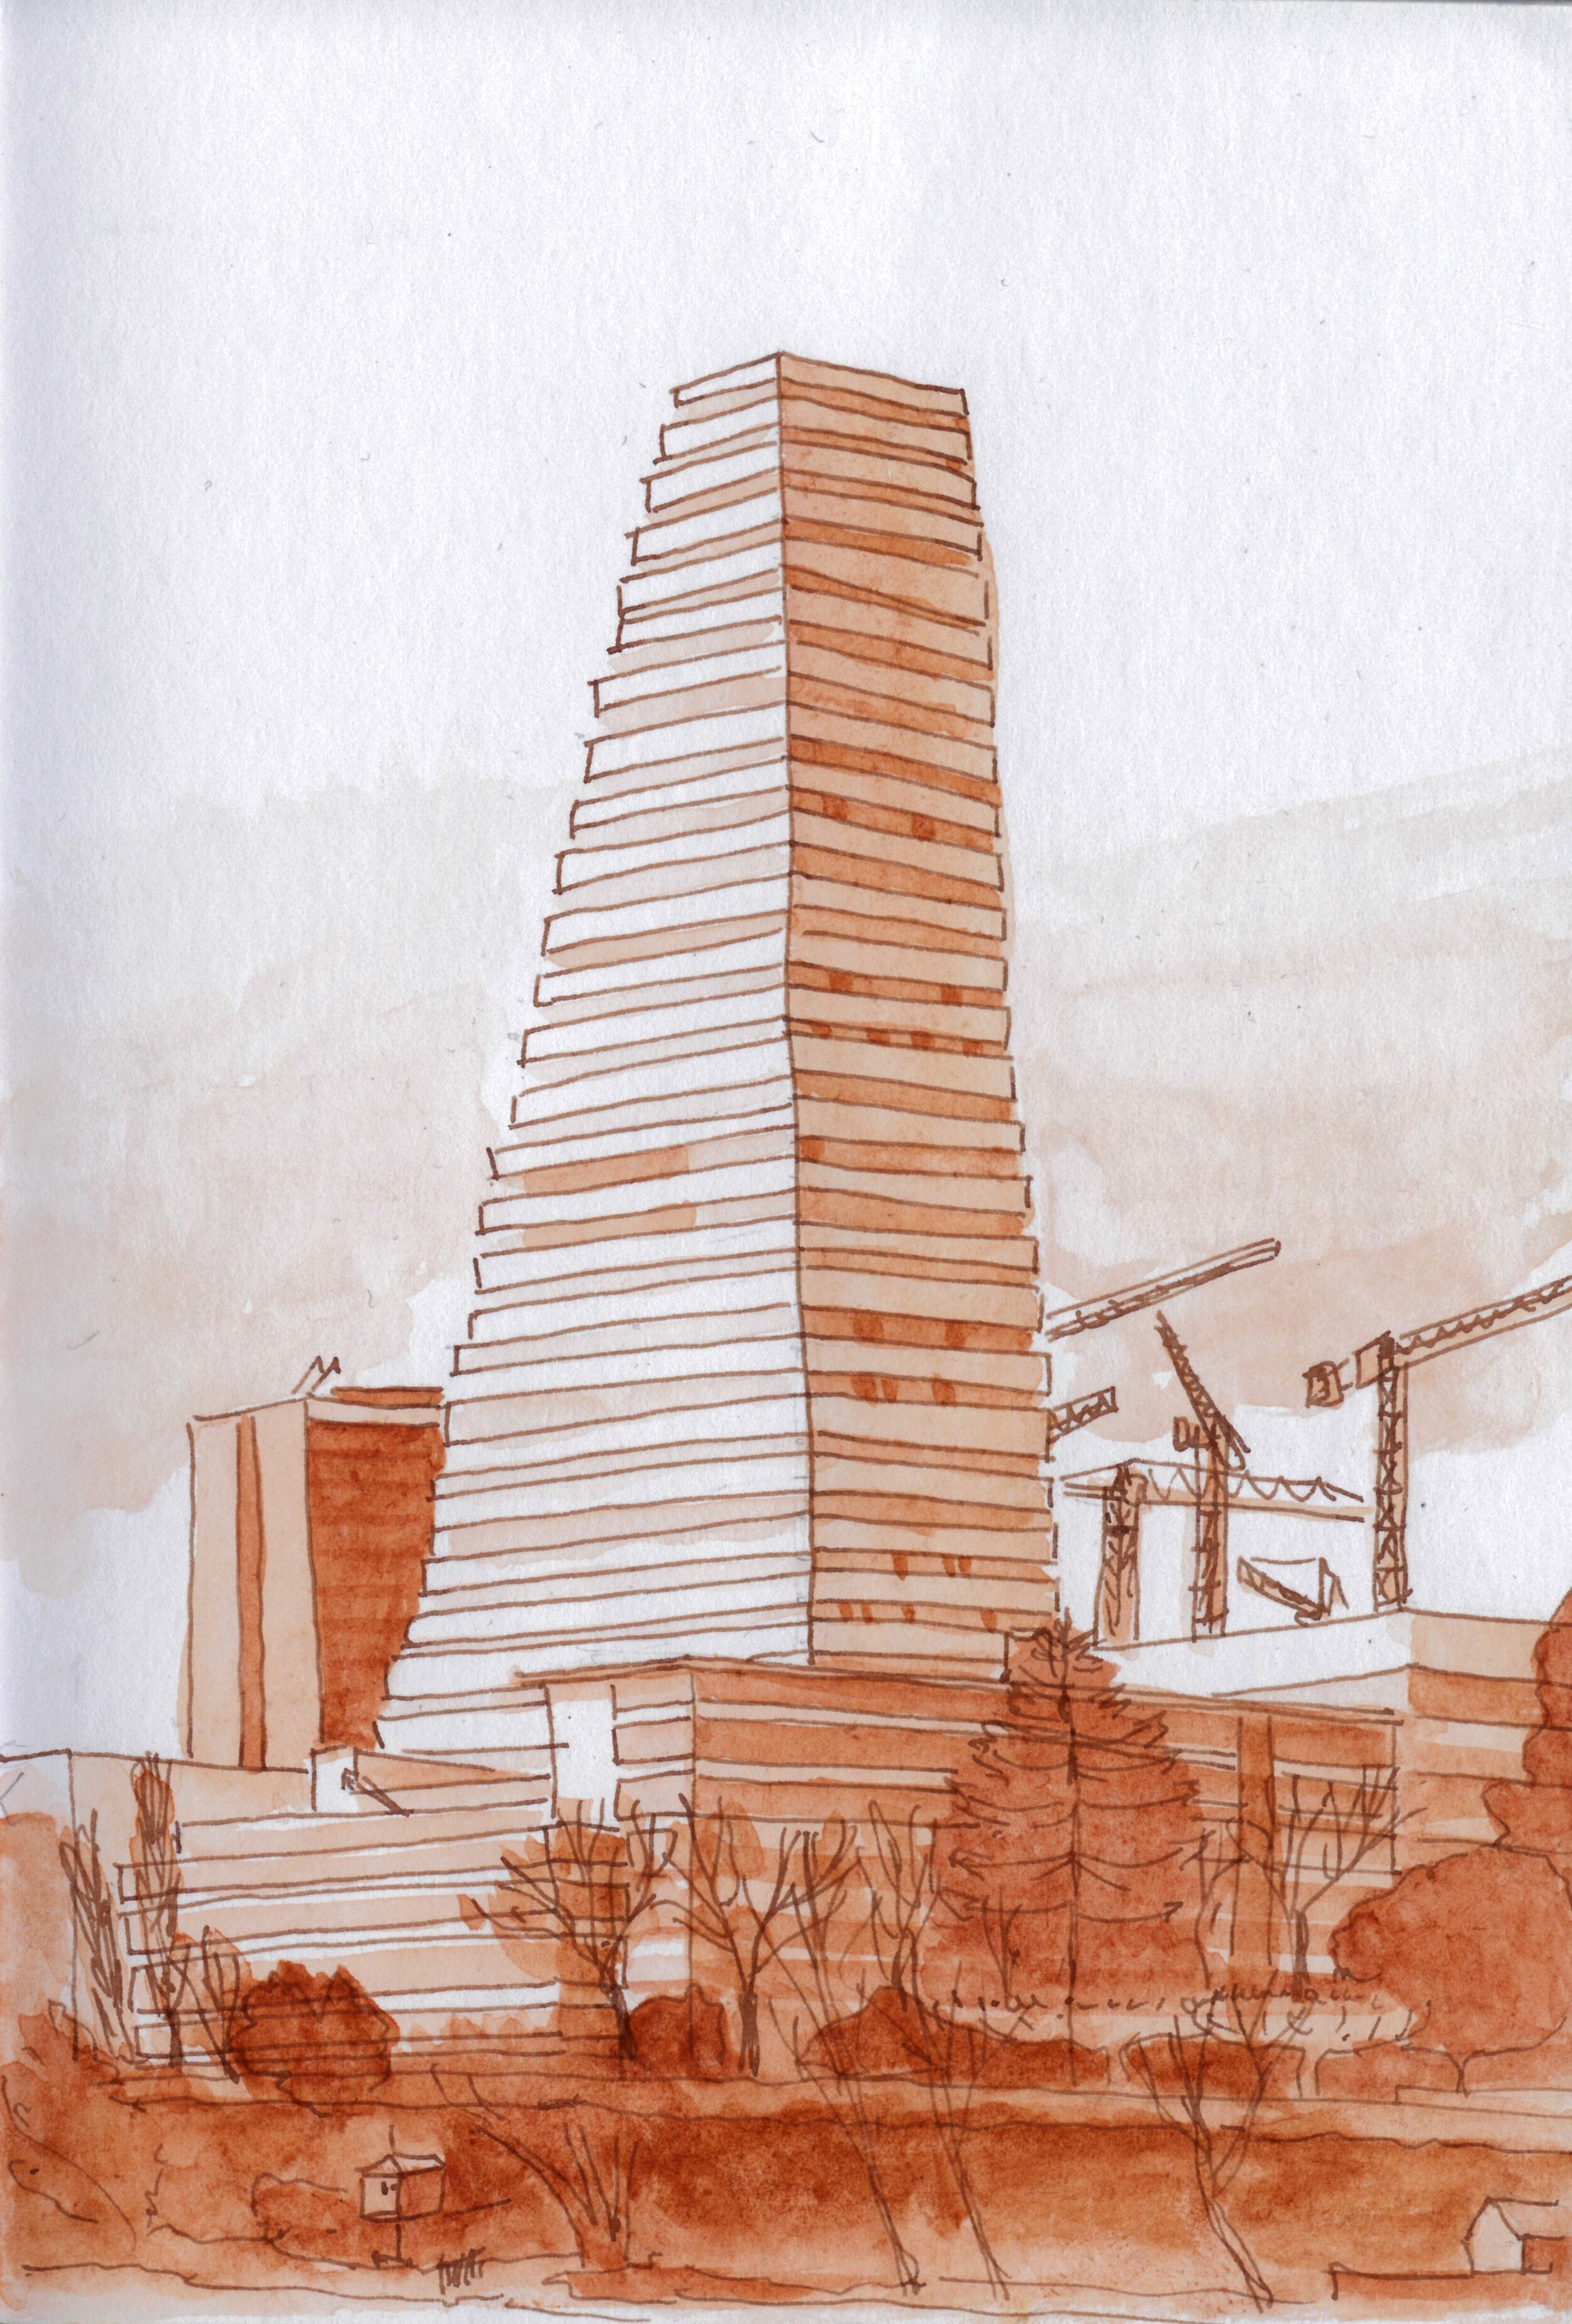 The Roche Tower. I was experimenting with DeAtramentis Sepia ink.